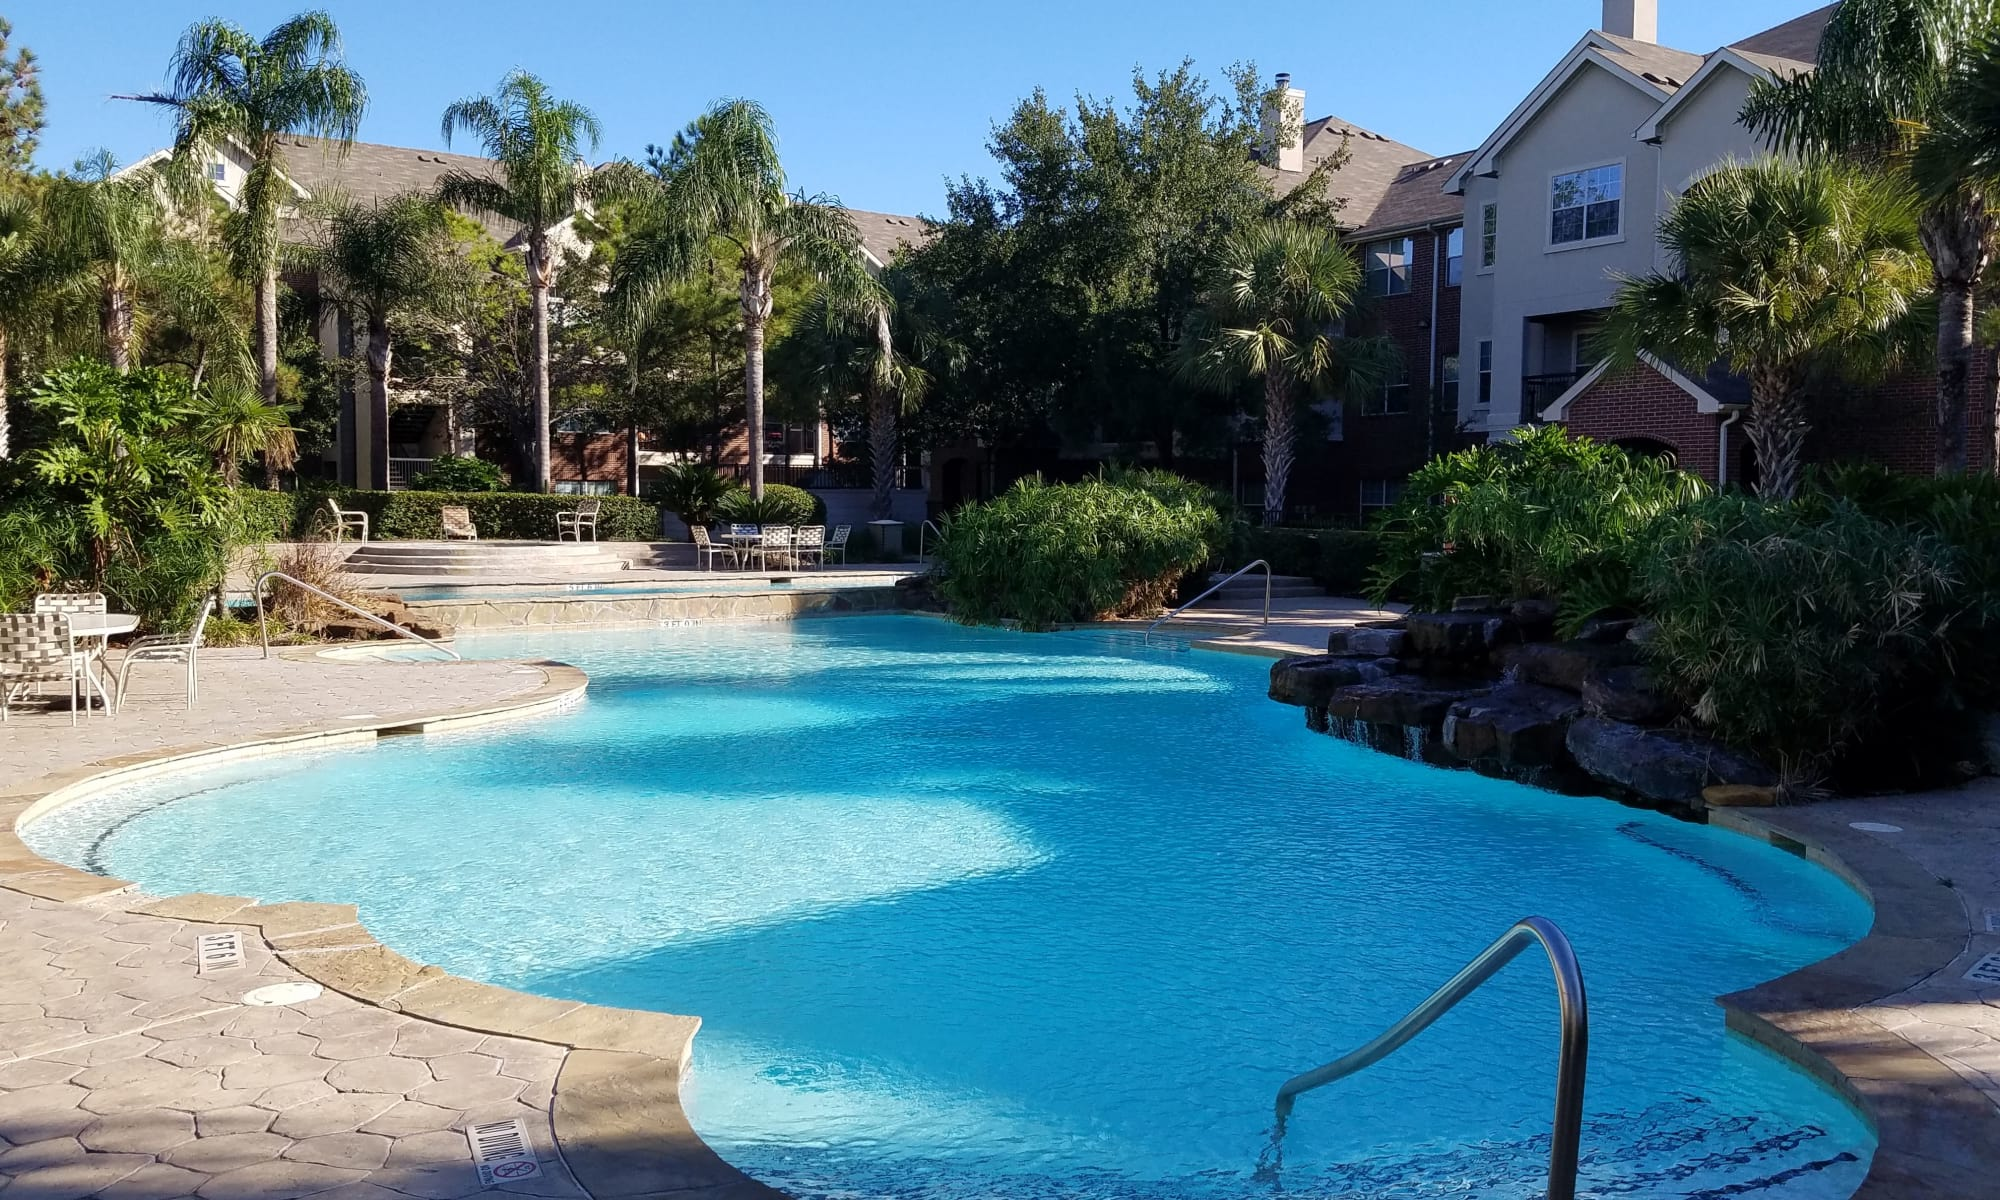 Apartments in Jersey Village, TX